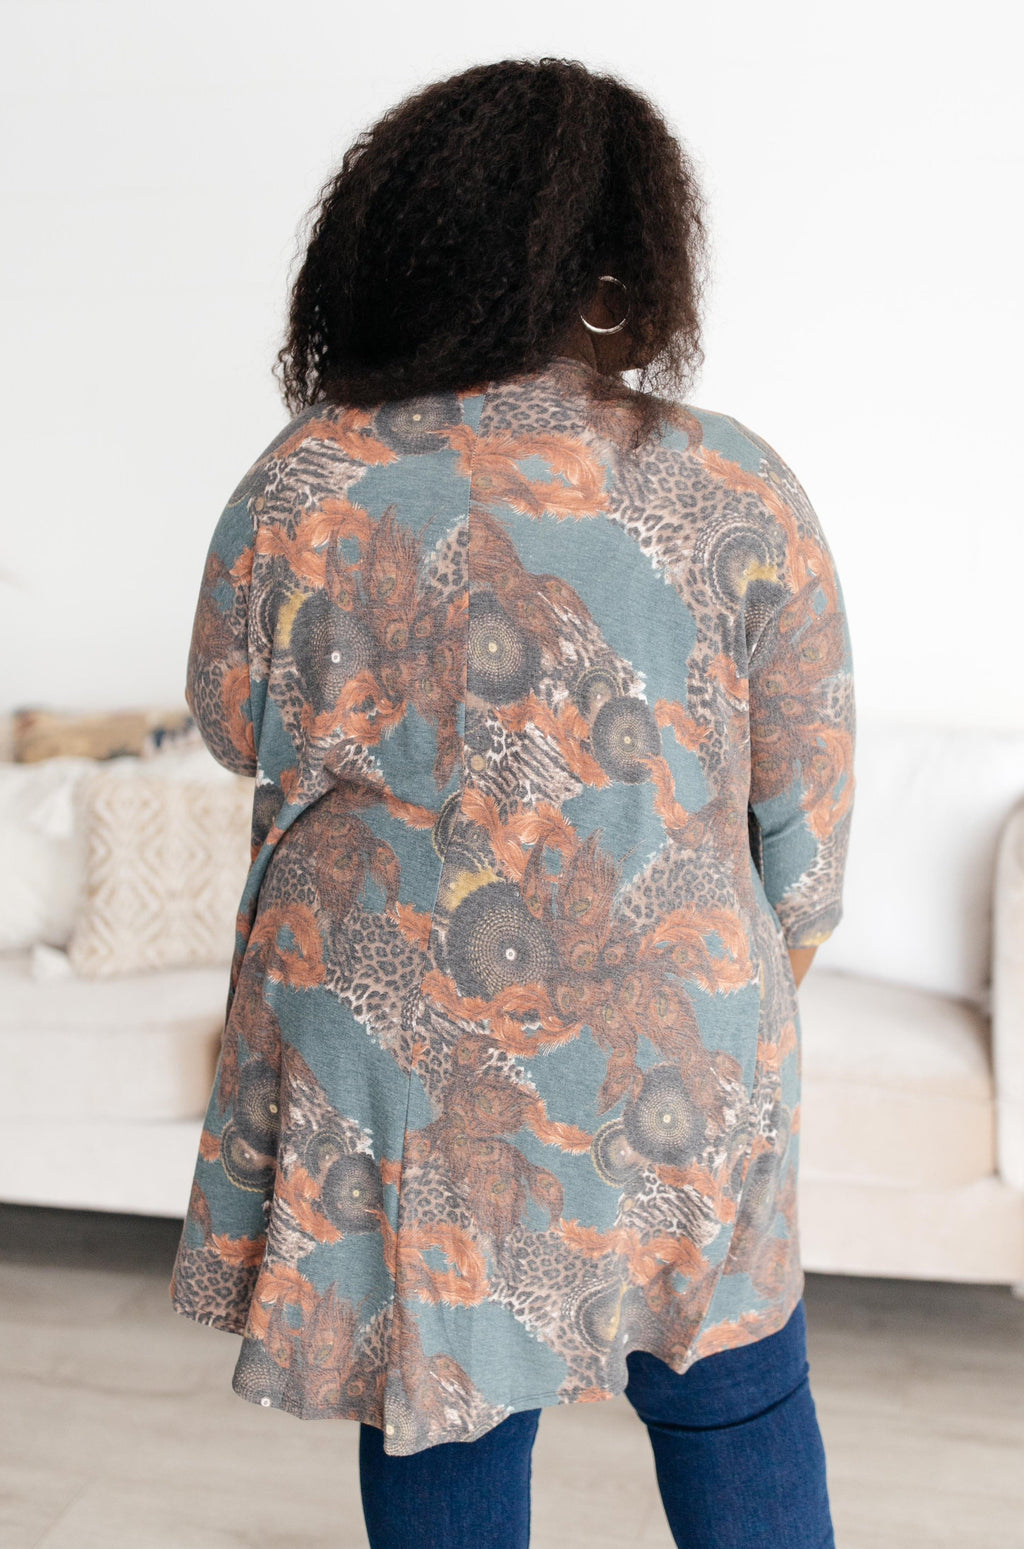 Abstract and Artistic Kimono-1XL, 2-16-2021, 2XL, 3XL, Group A, Group B, Group C, Group D, Large, Made in the USA, Medium, Small, Tops, XL, XS-Womens Artisan USA American Made Clothing Accessories